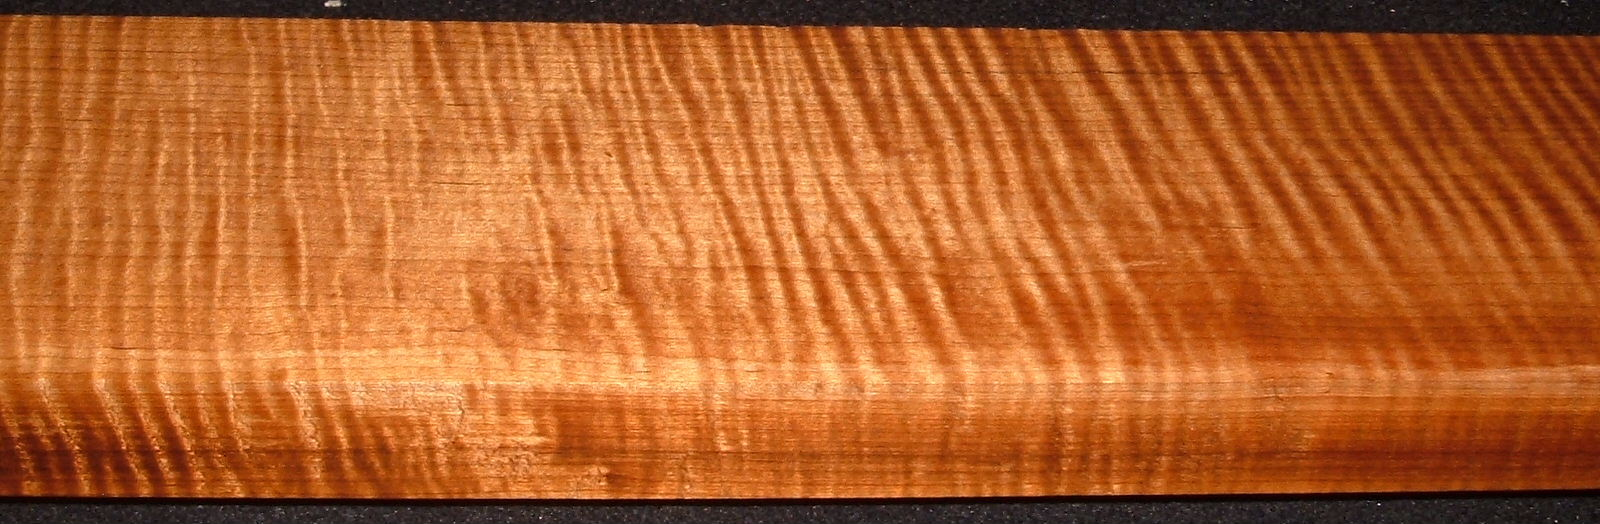 QRM2008-215, 1-1/8x3-5/8x45, Quartersawn Roasted Curly Maple